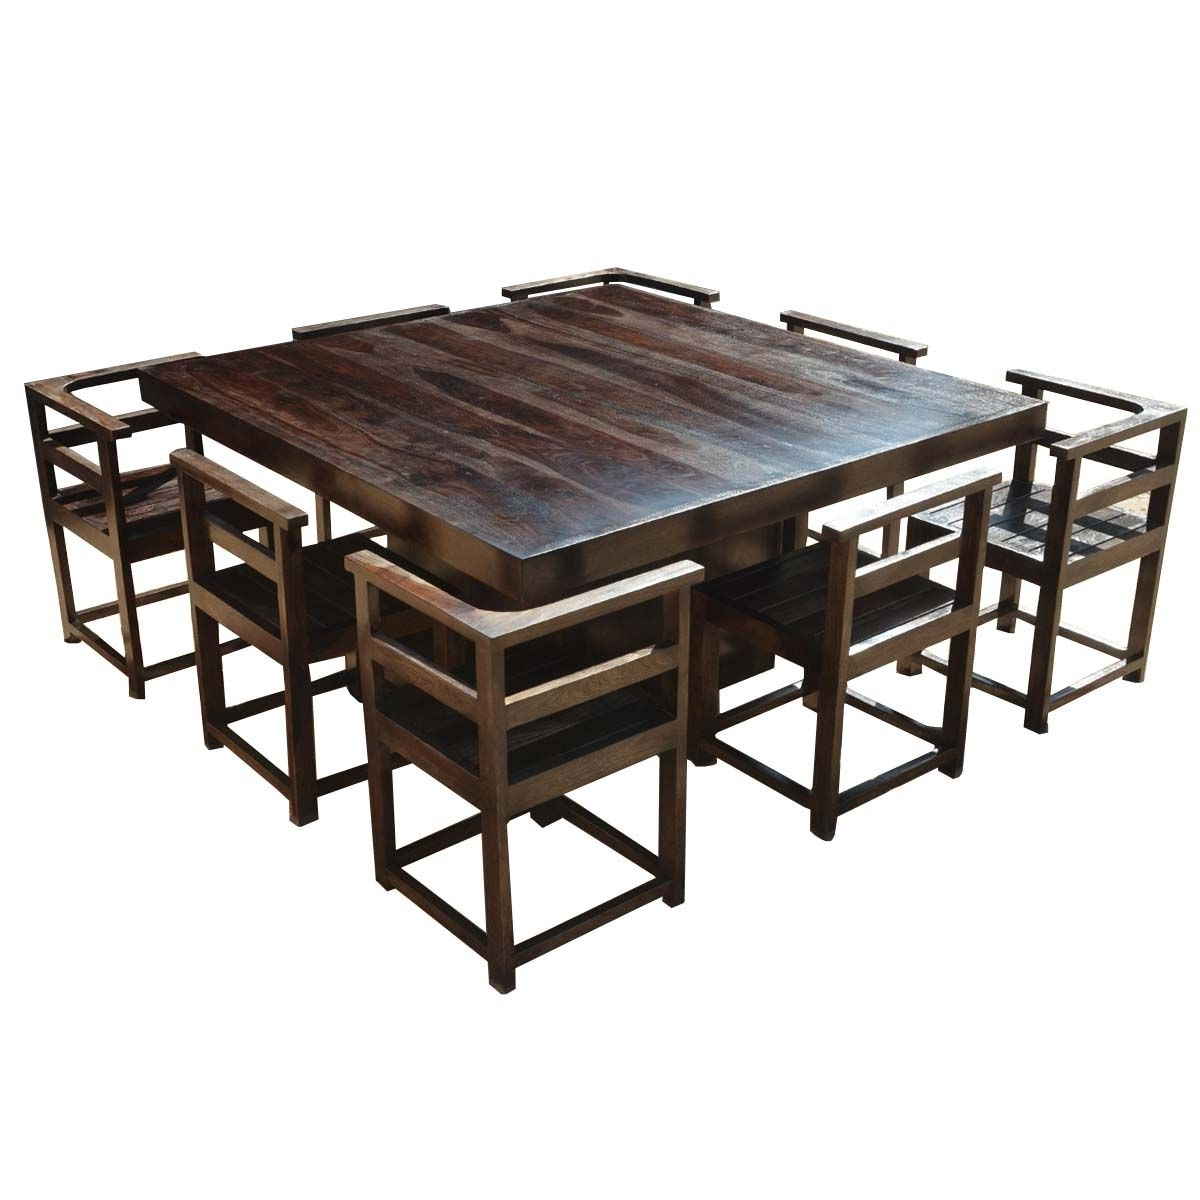 "Solid Oak Dining Tables And 8 Chairs With Regard To Popular Modern Rustic Solid Wood 64"" Square Pedestal Dining Table & 8 Chairs (View 22 of 25)"